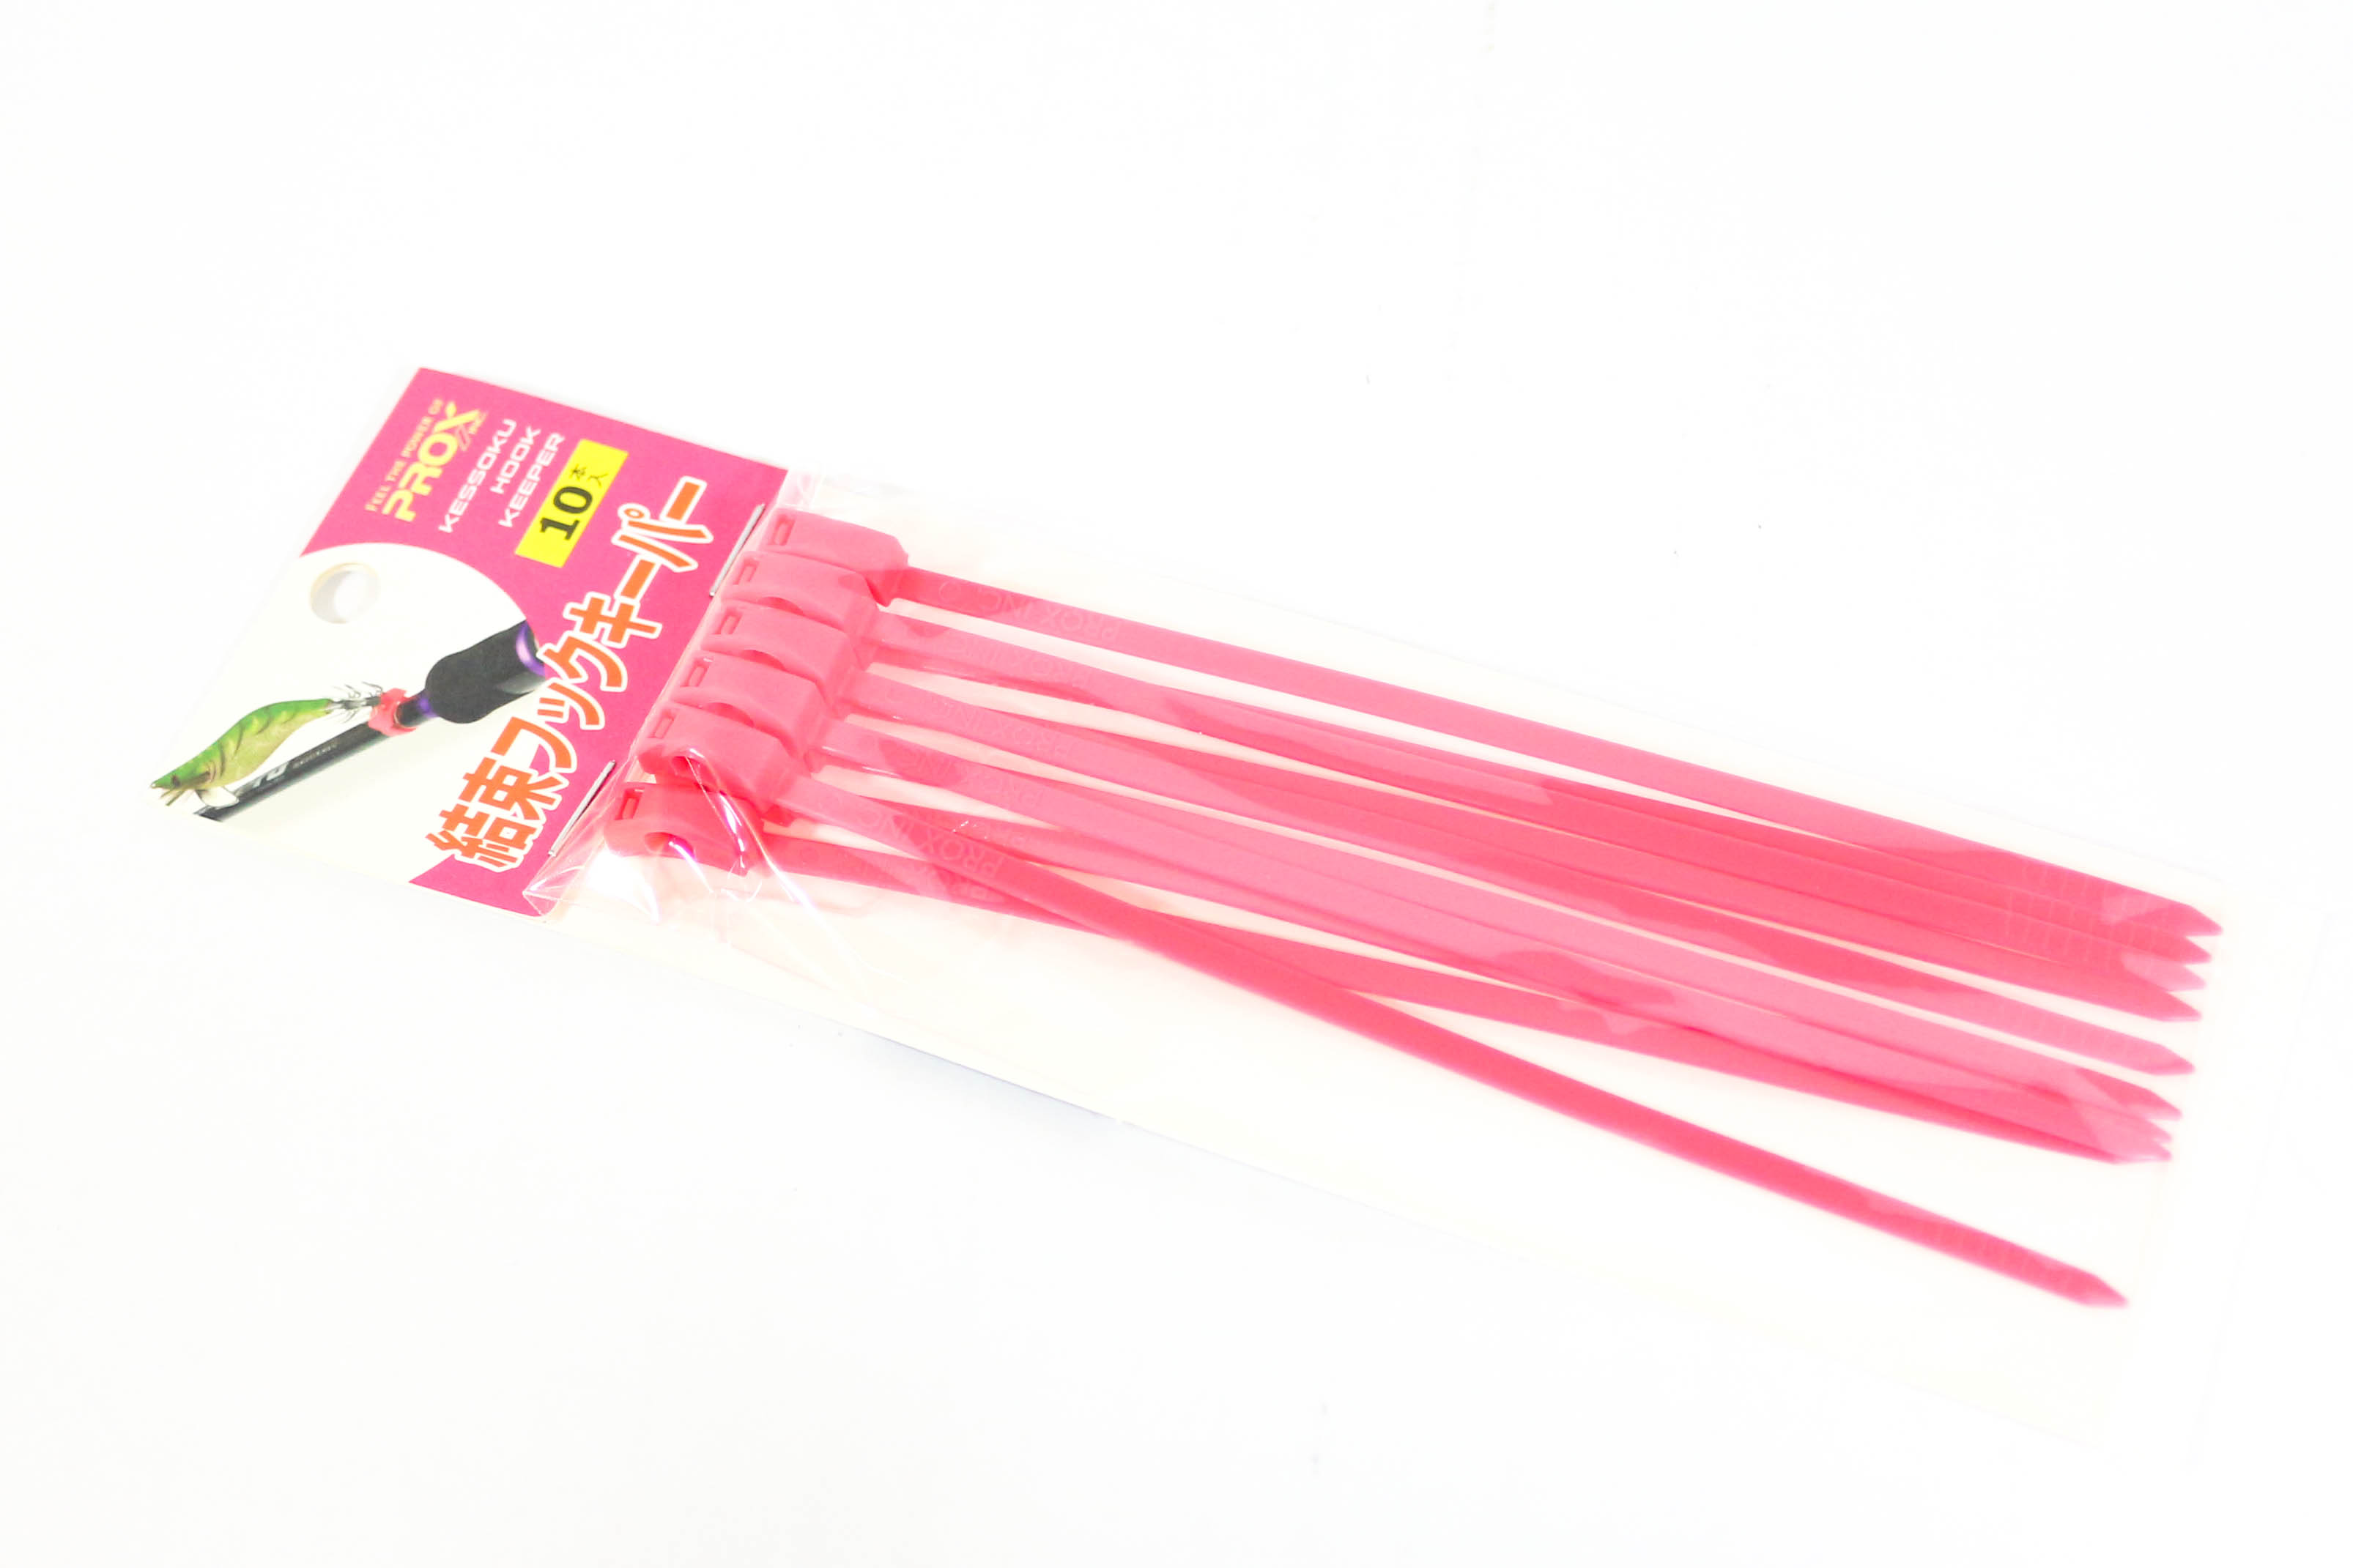 Prox PX994SP Cable Tie Hook Keeper 10/pack, 35 x 150 x 4 mm Pink (3610)